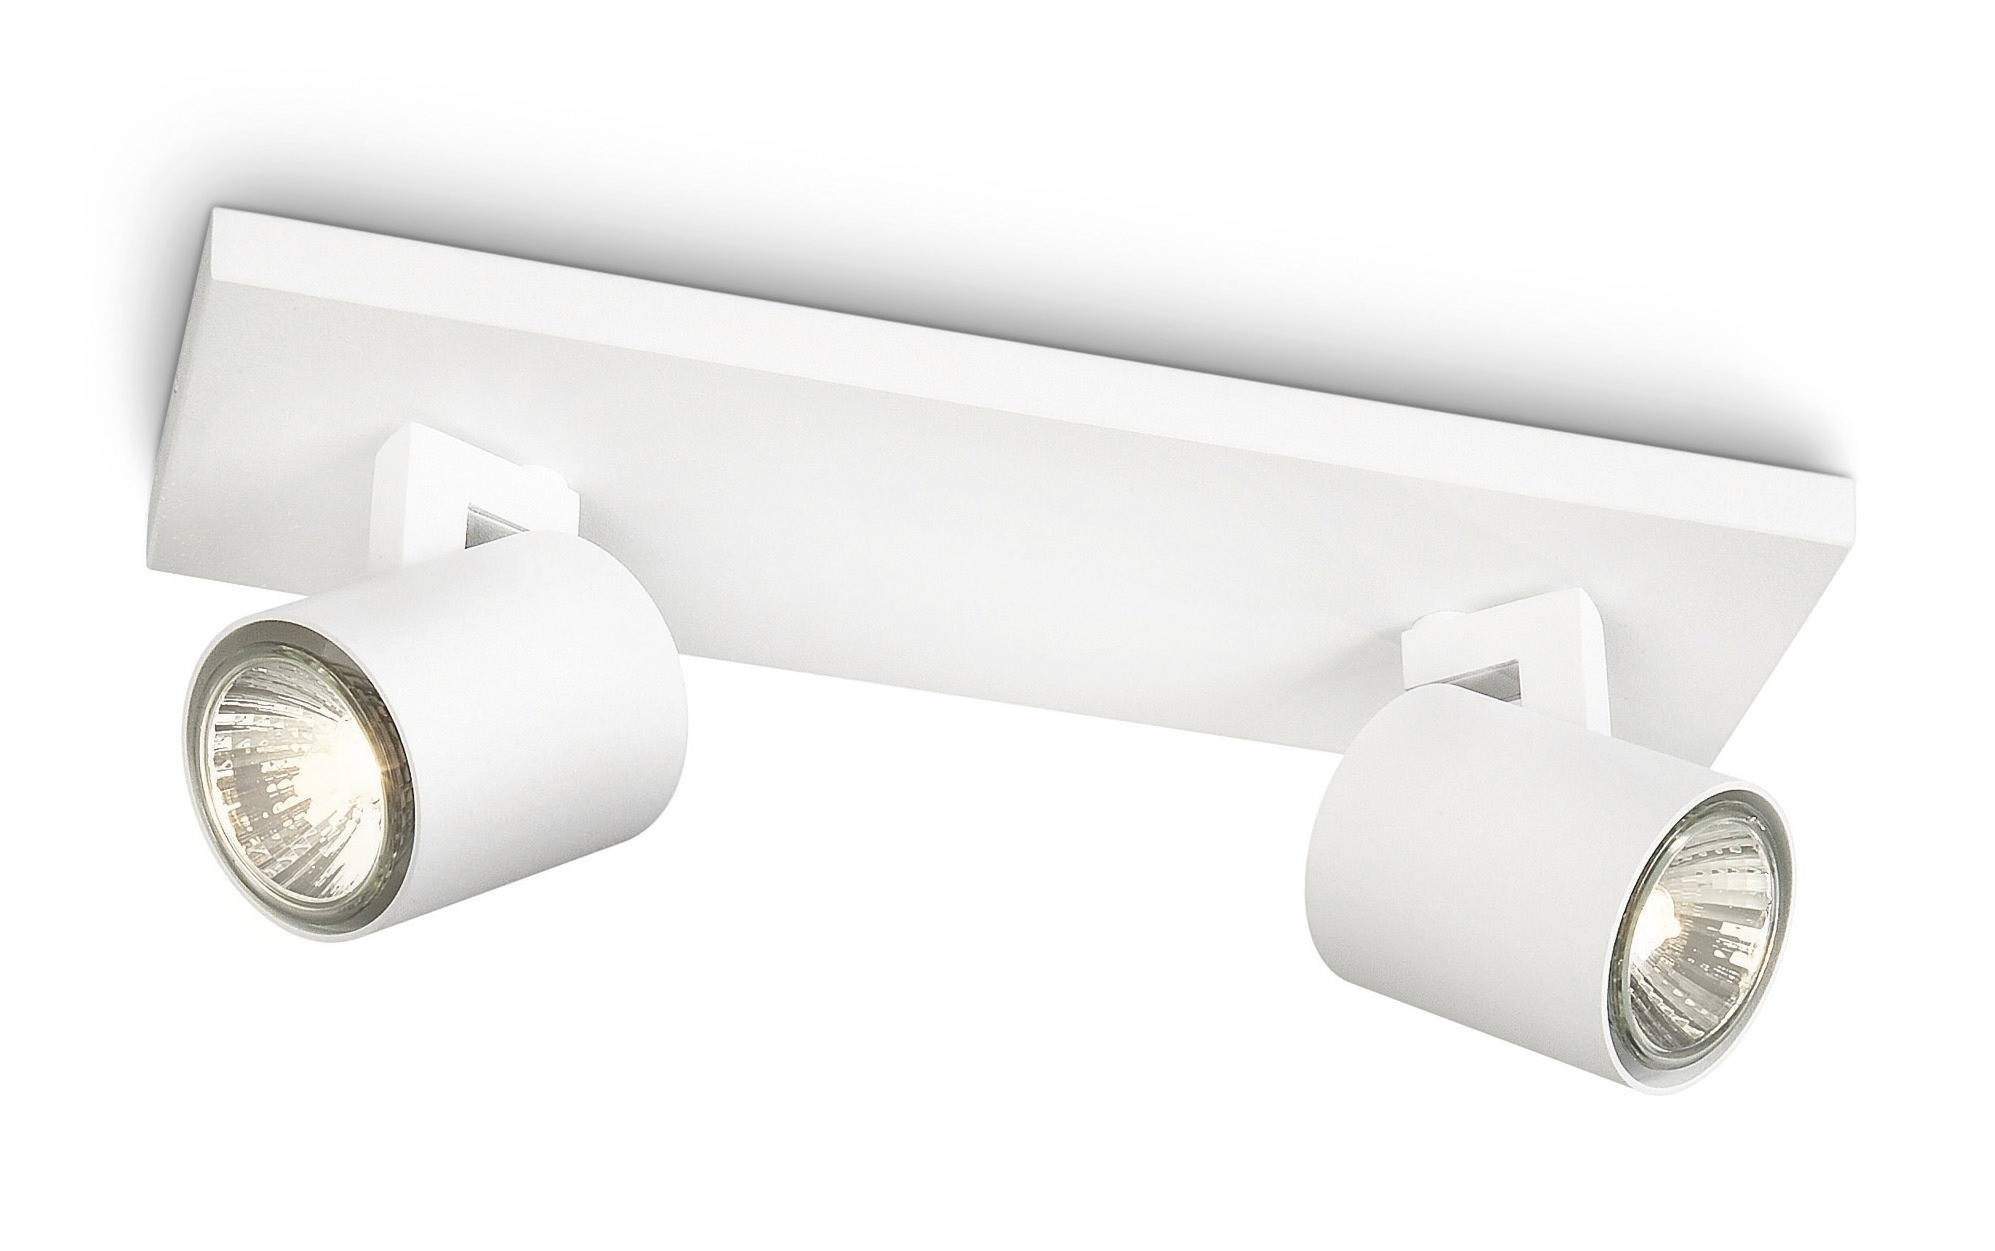 Faretti a led spot philips runner bianco area illumina